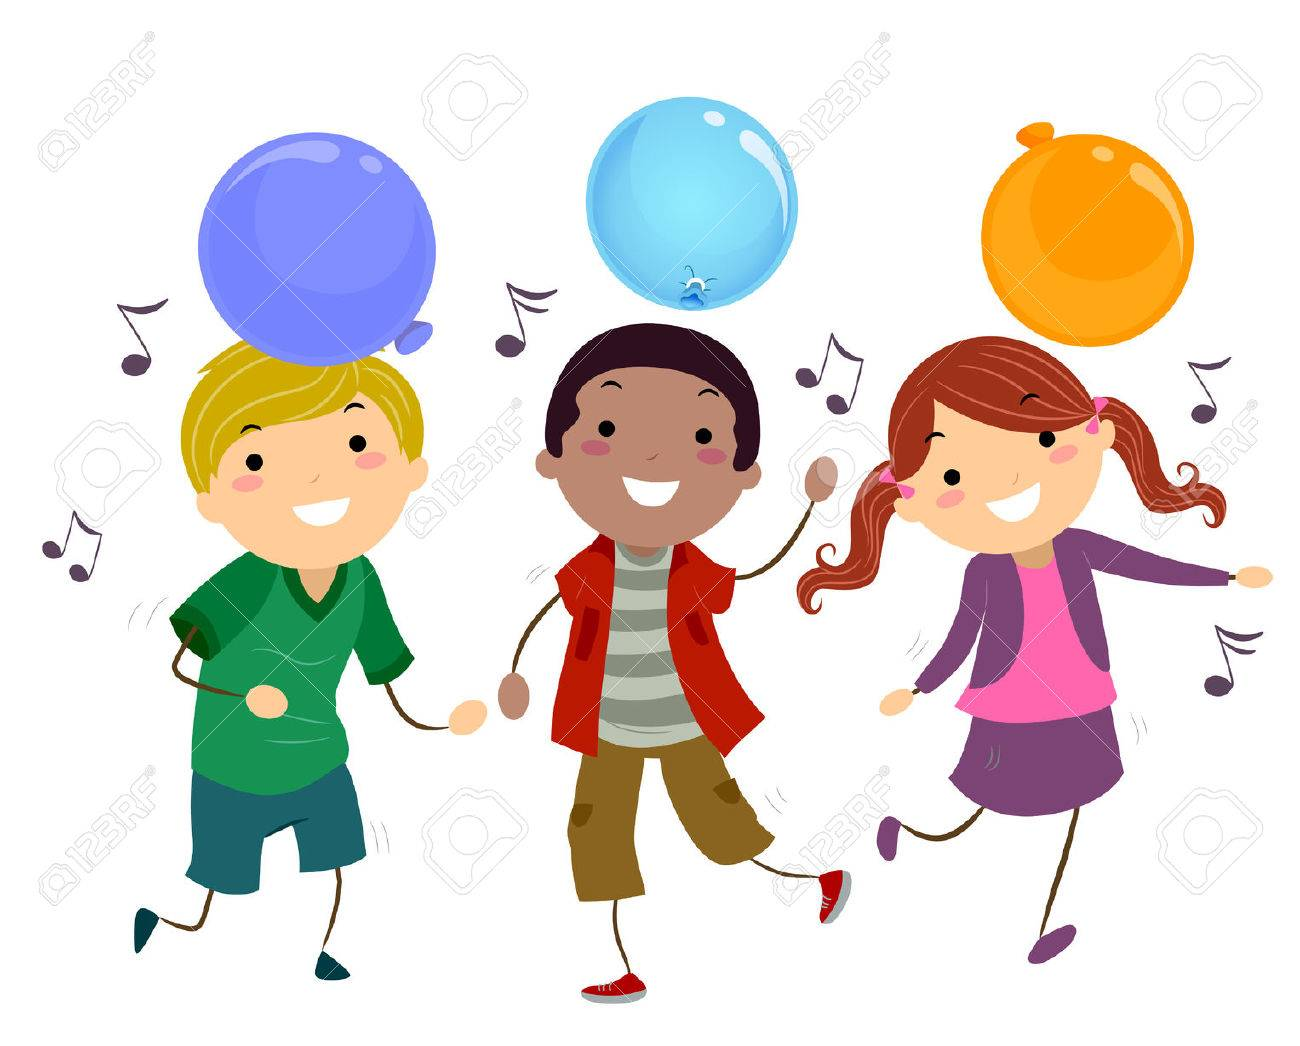 1300x1046 Stickman Illustration Of Kids Dancing To Music Stock Photo